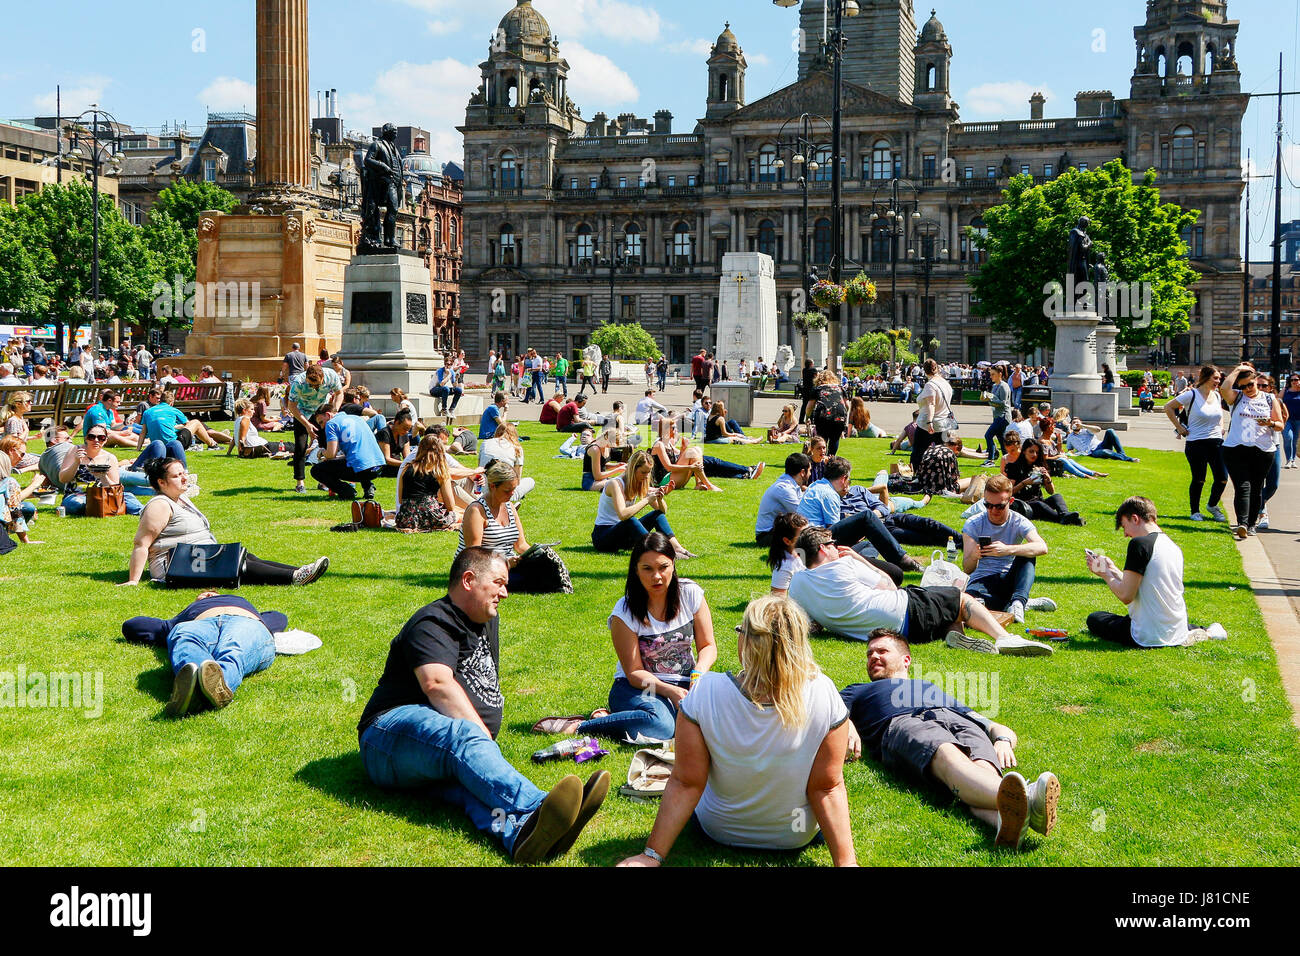 Glasgow, Scotland, UK. 26th May, 2017. As temperatures soar into the high 20 C's the people of Glasgow take - Stock Image